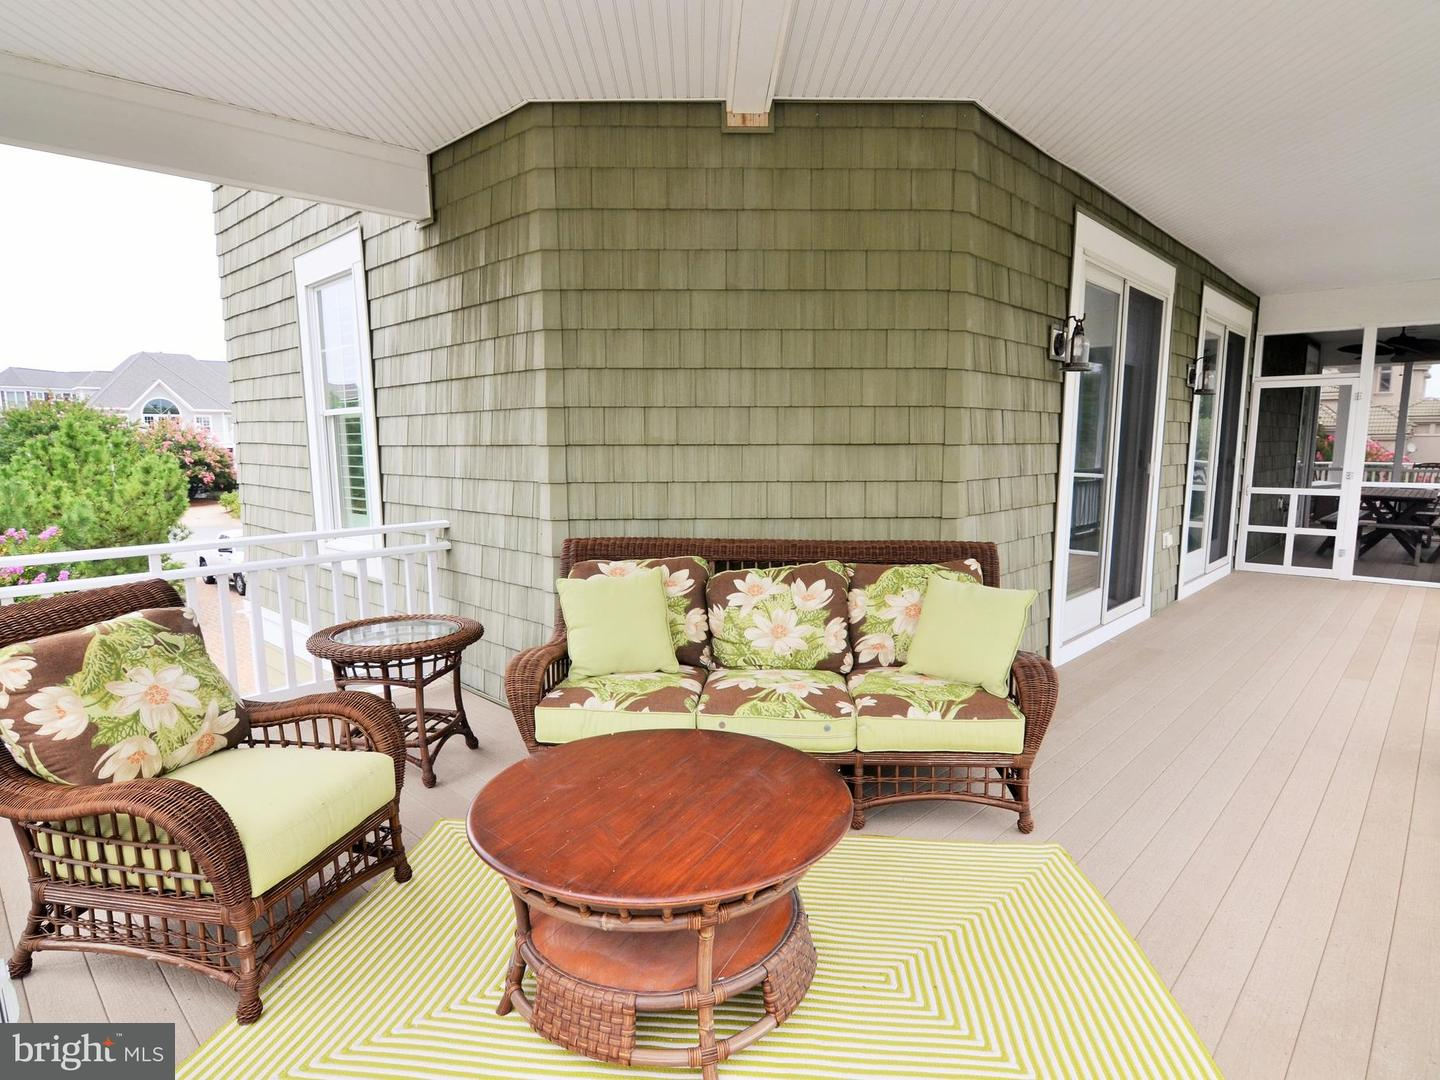 1002293530-300500807455-2018-09-25-15-08-25 31 Hall Ave | Rehoboth Beach, DE Real Estate For Sale | MLS# 1002293530  - 1st Choice Properties